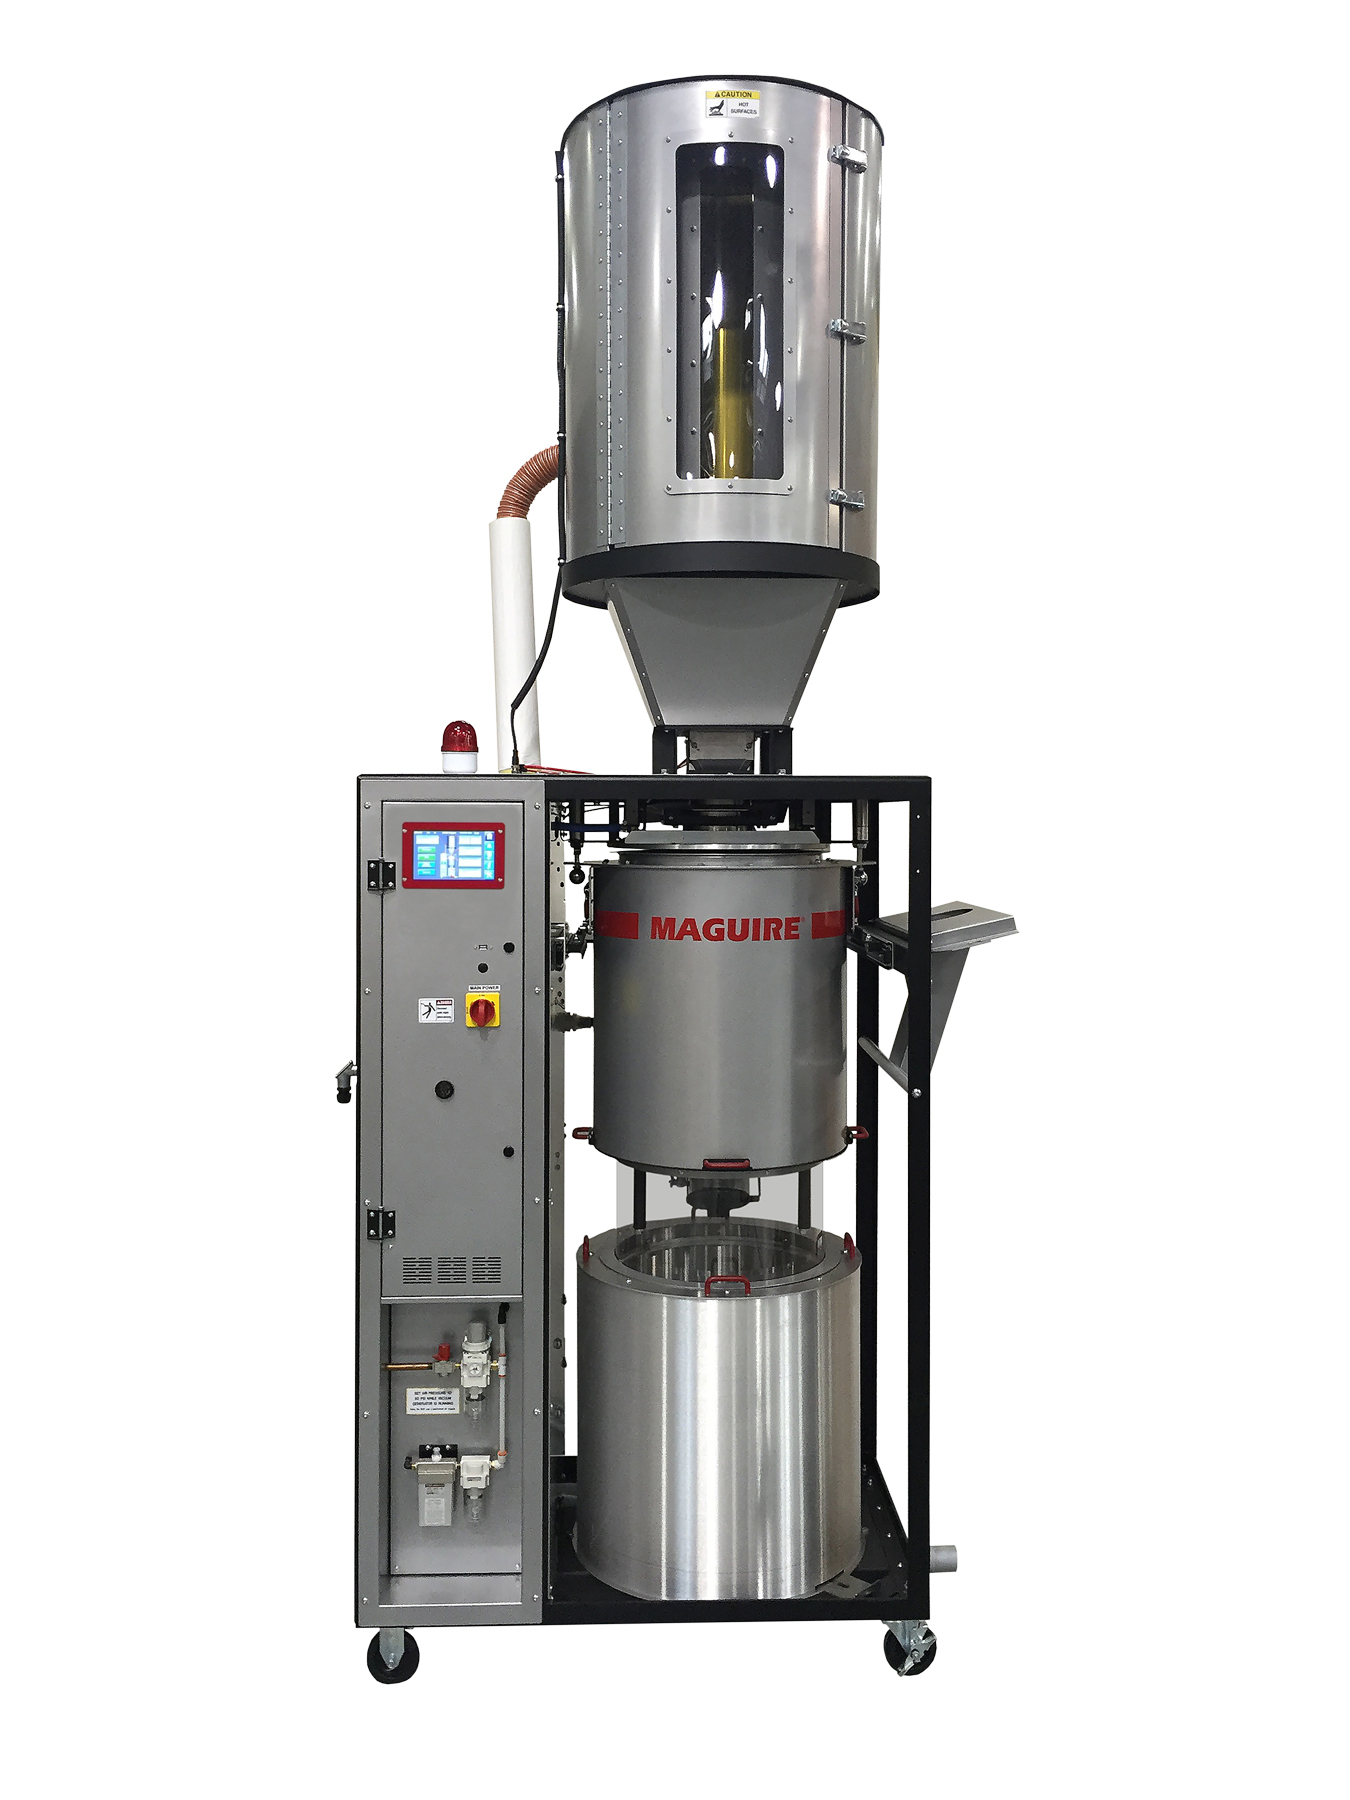 VBD 300 Vacuum Dryer Maguire